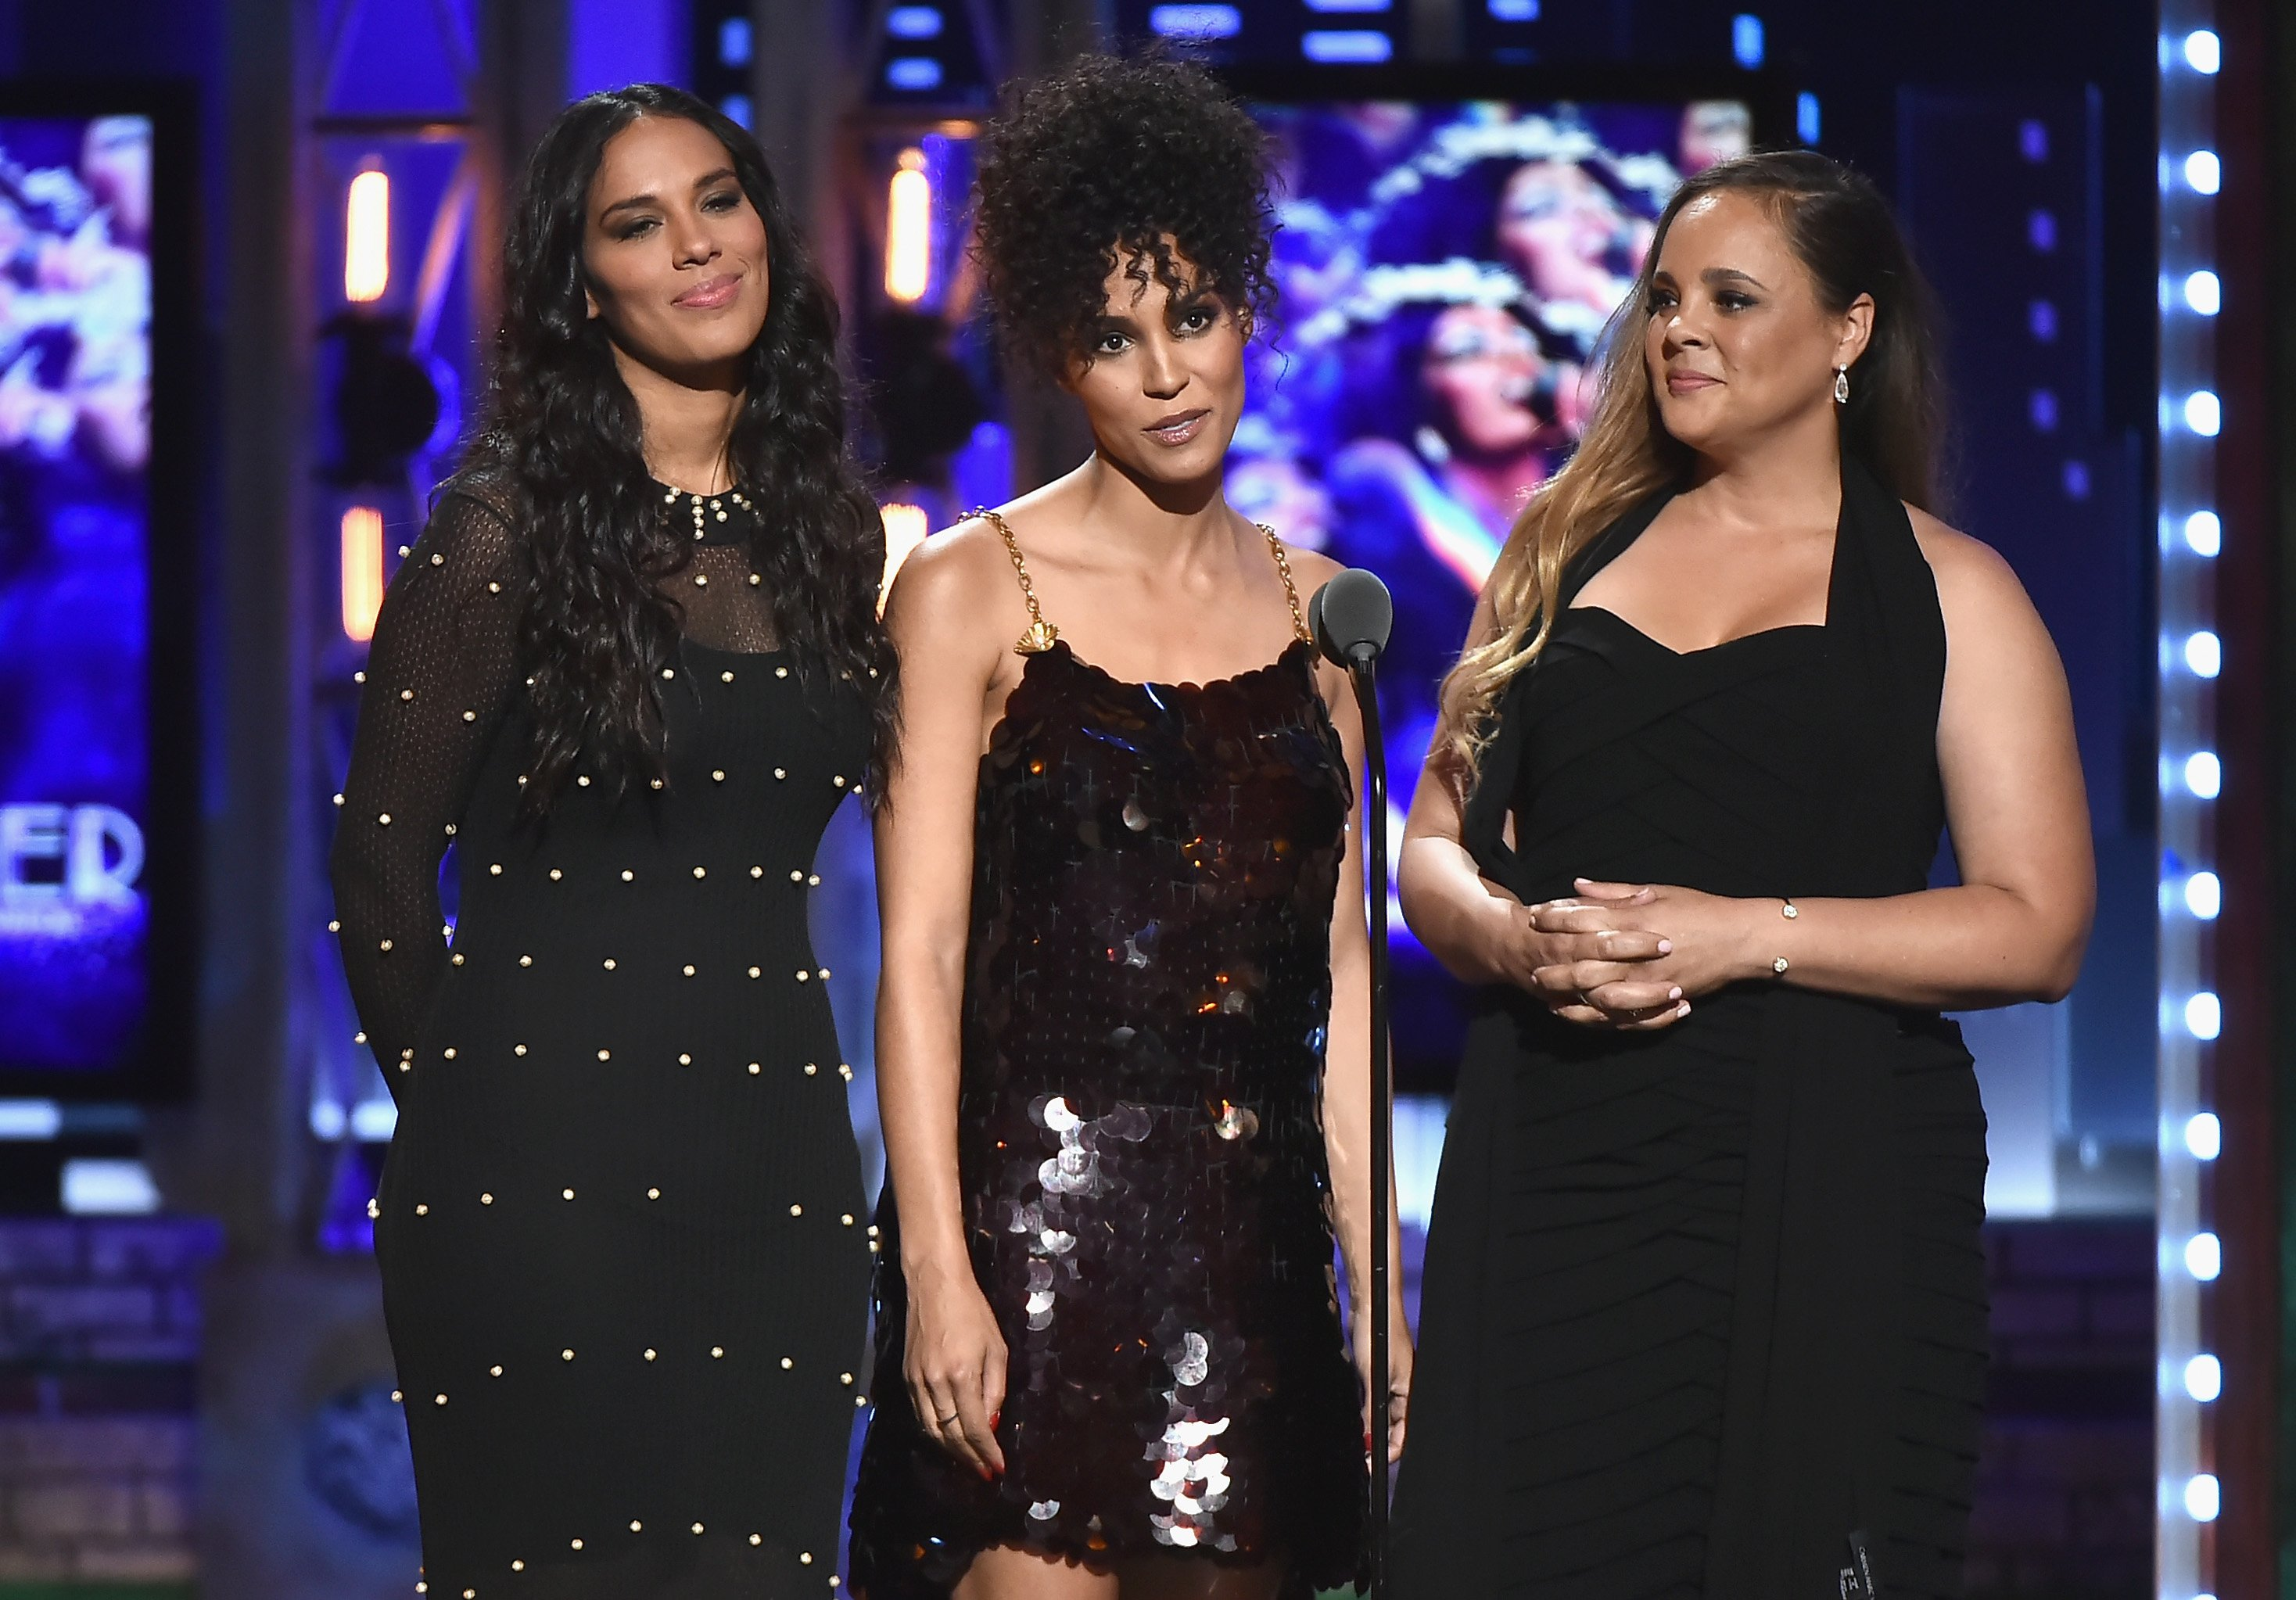 Brooklyn Sudano, Amanda Sudano and Mimi Summer attend the 72nd Annual Tony Awards at Radio City Music Hall on June 10, 2018. | Photo: GettyImages